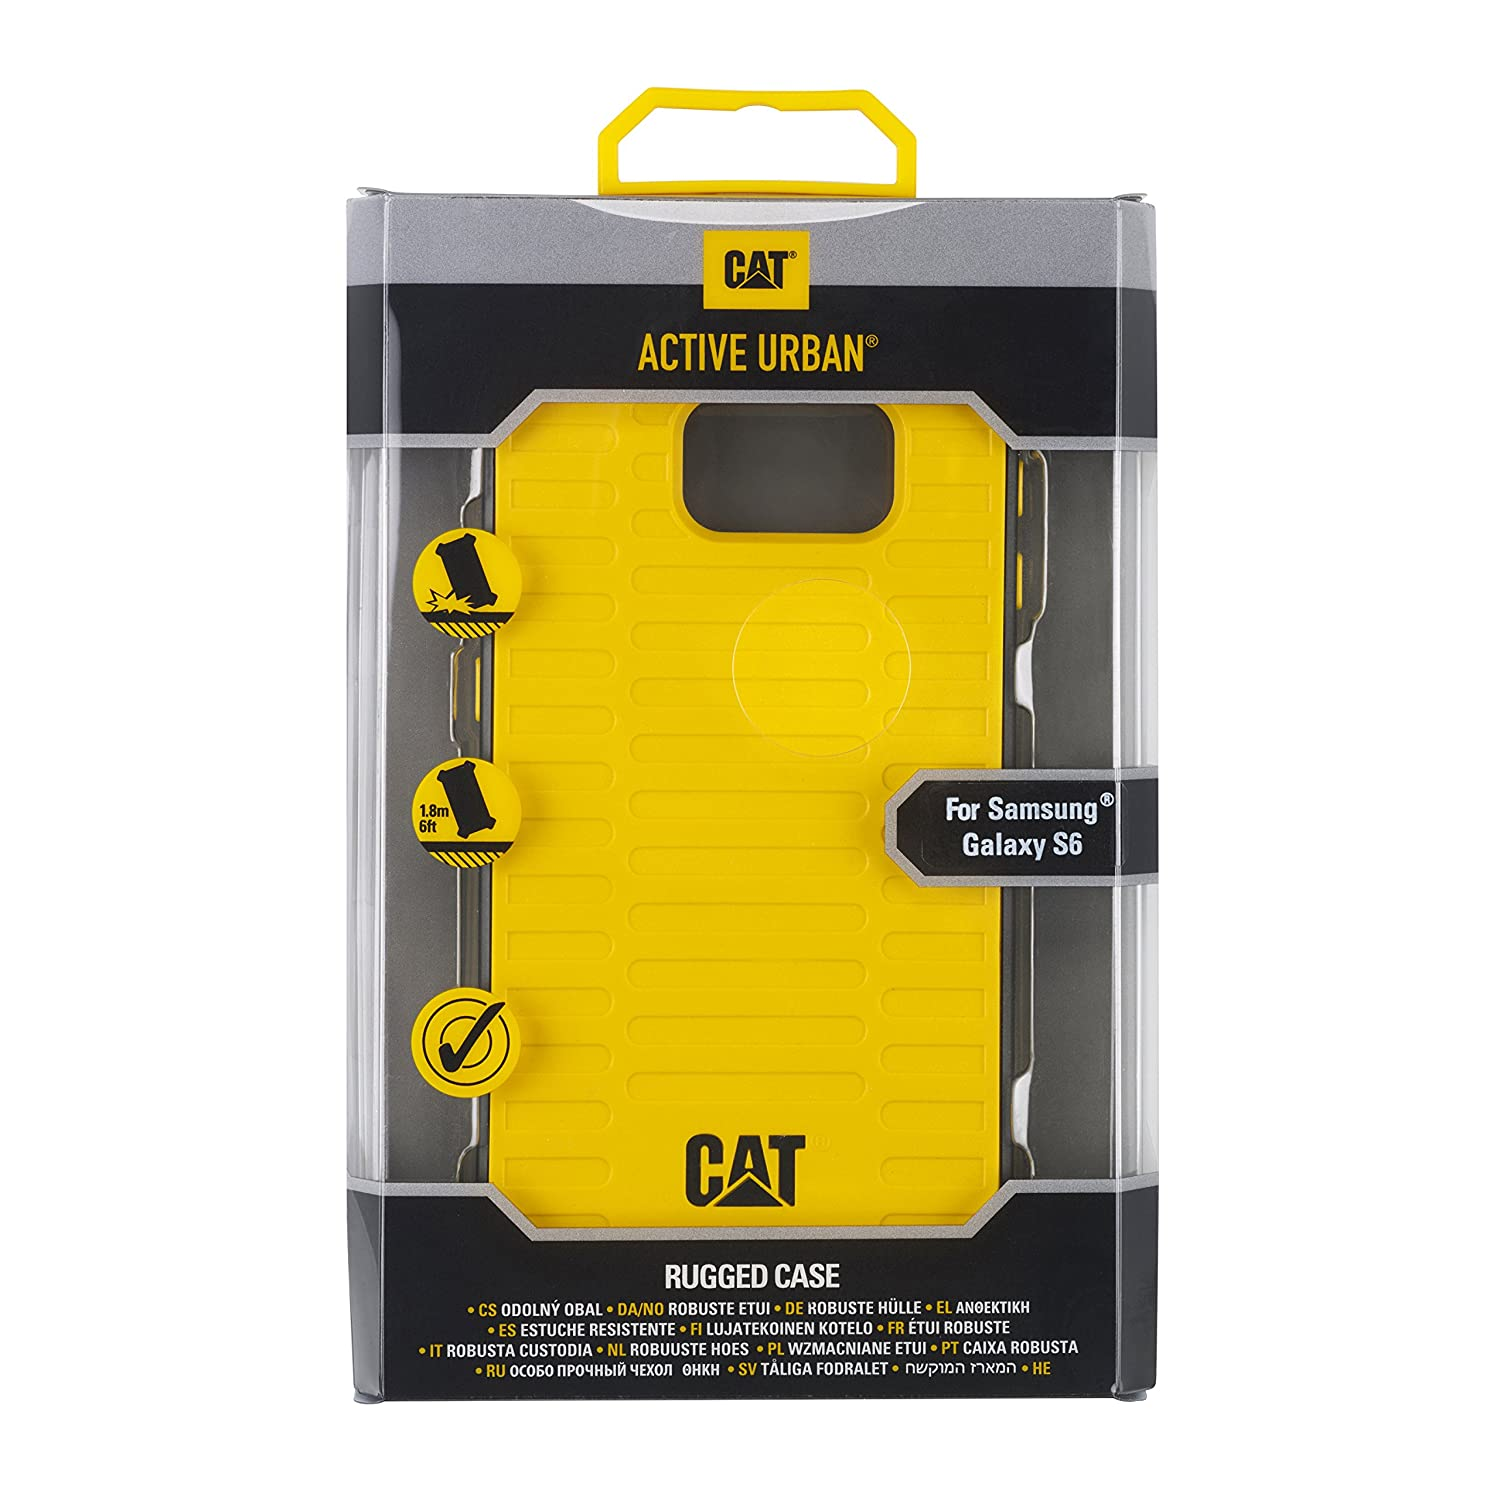 Amazon.com: CAT PHONES Active Urban Case for Samsung S6 - Yellow: Cell Phones & Accessories